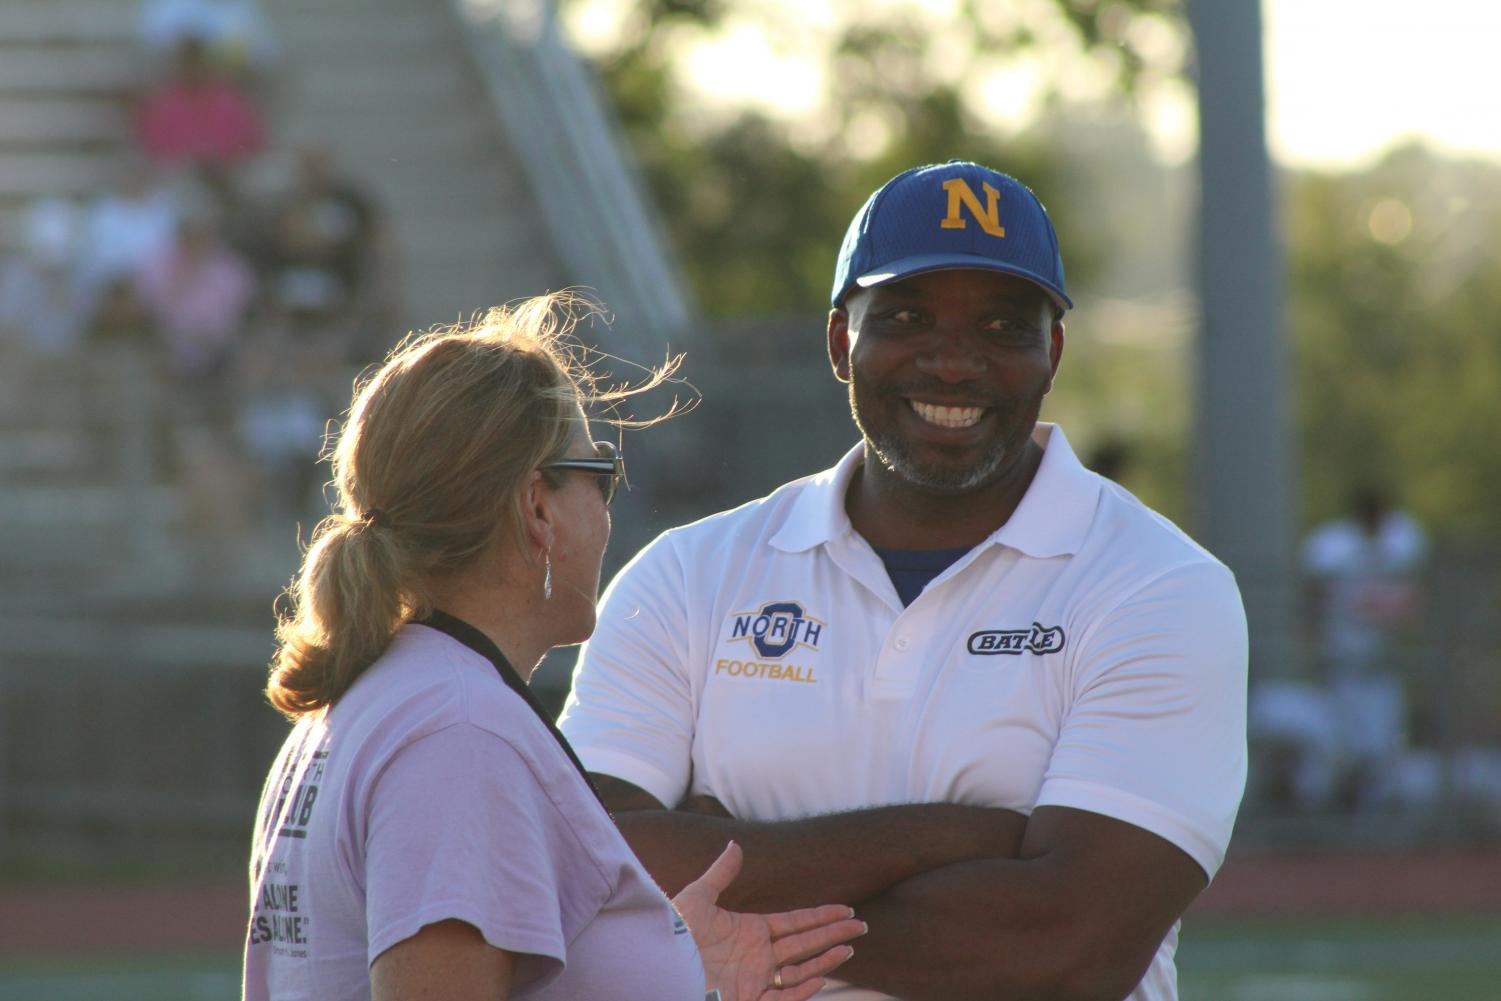 Johnson laughs on the sidelines of the varsity football game against Burke with co-worker Melinda Bailey. Photo by Caitlin Pieters